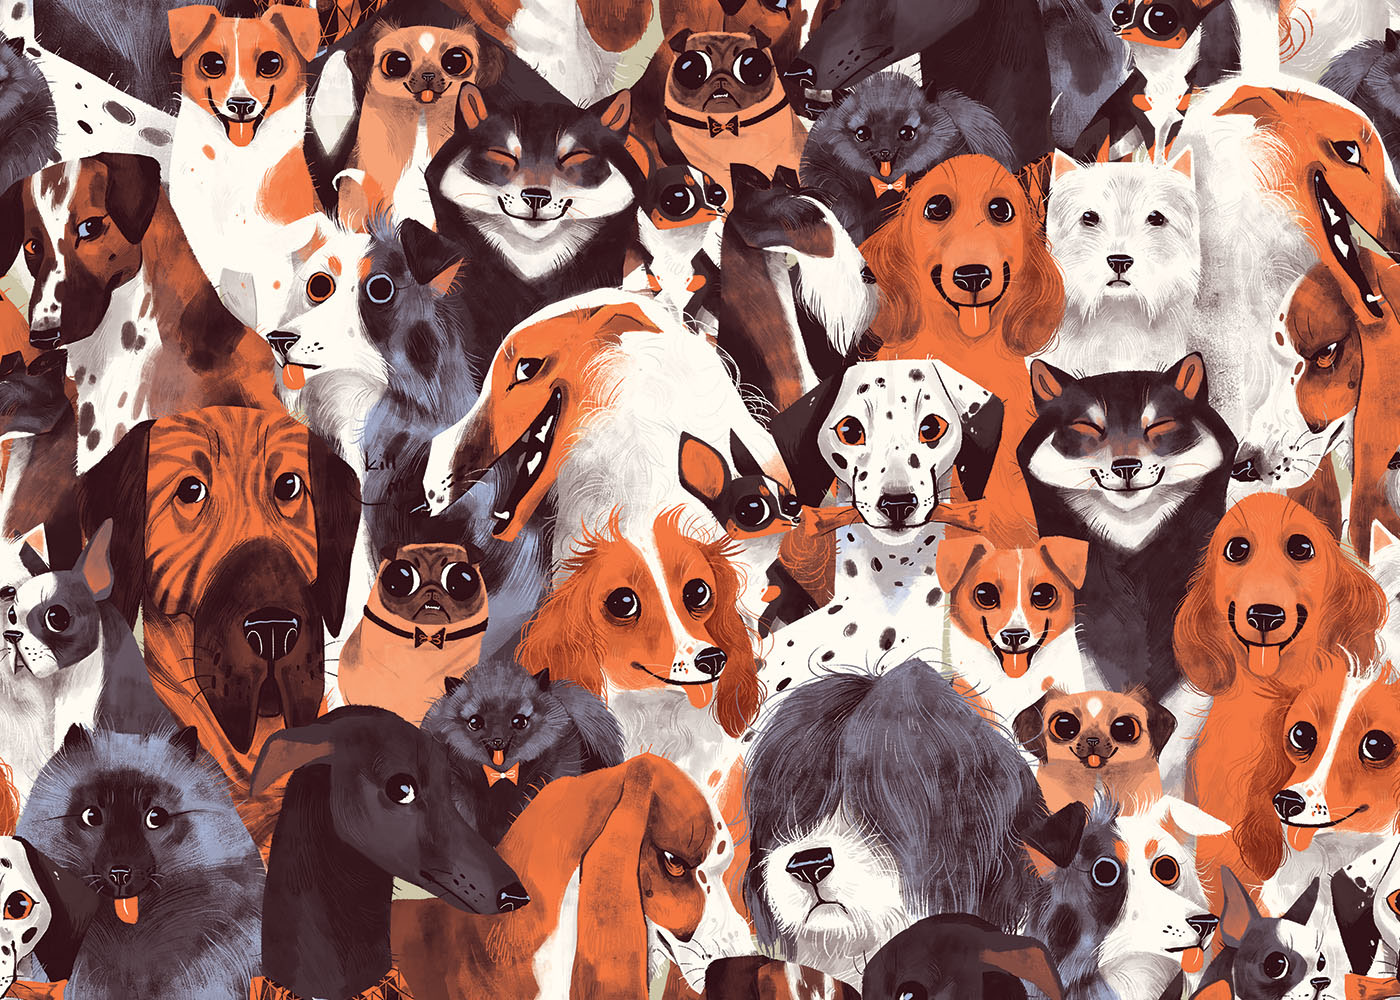 A Pack of Dogs on Behance